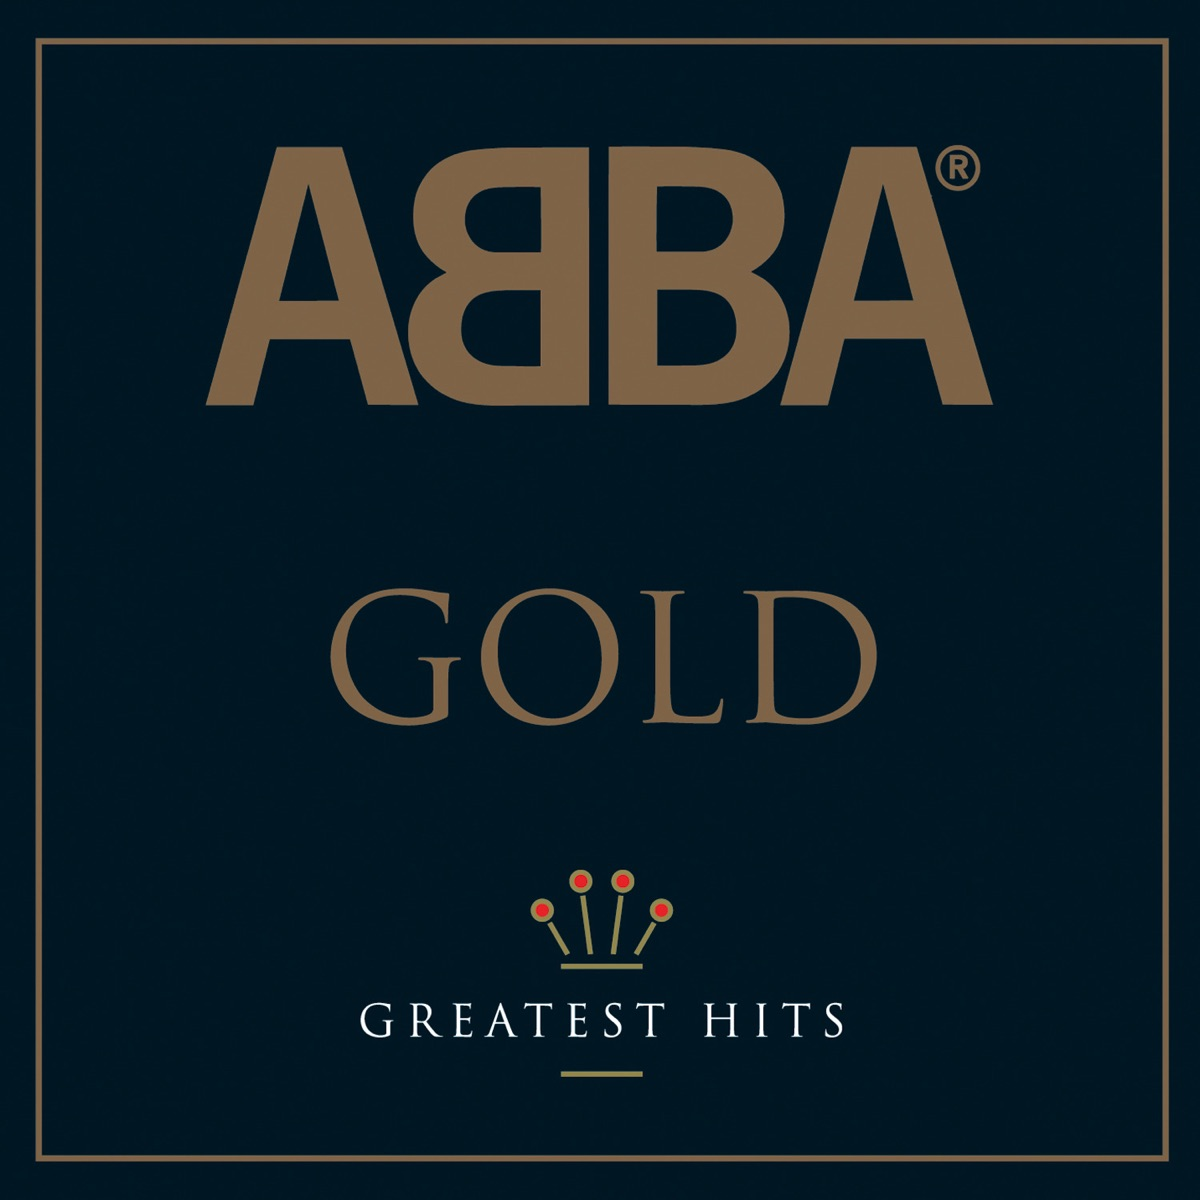 Gold Greatest Hits ABBA CD cover